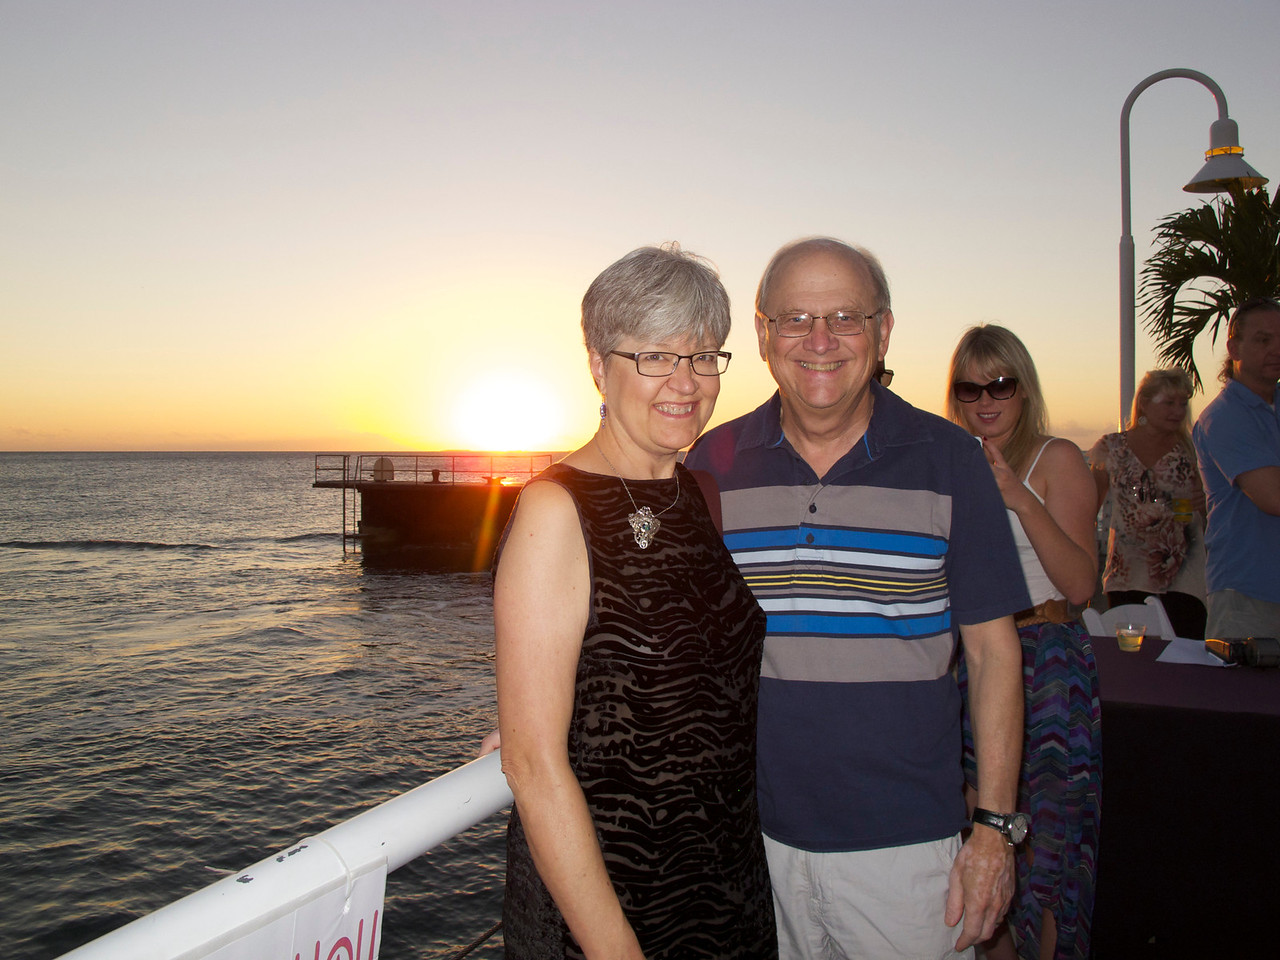 Louise and Phil at sunset.